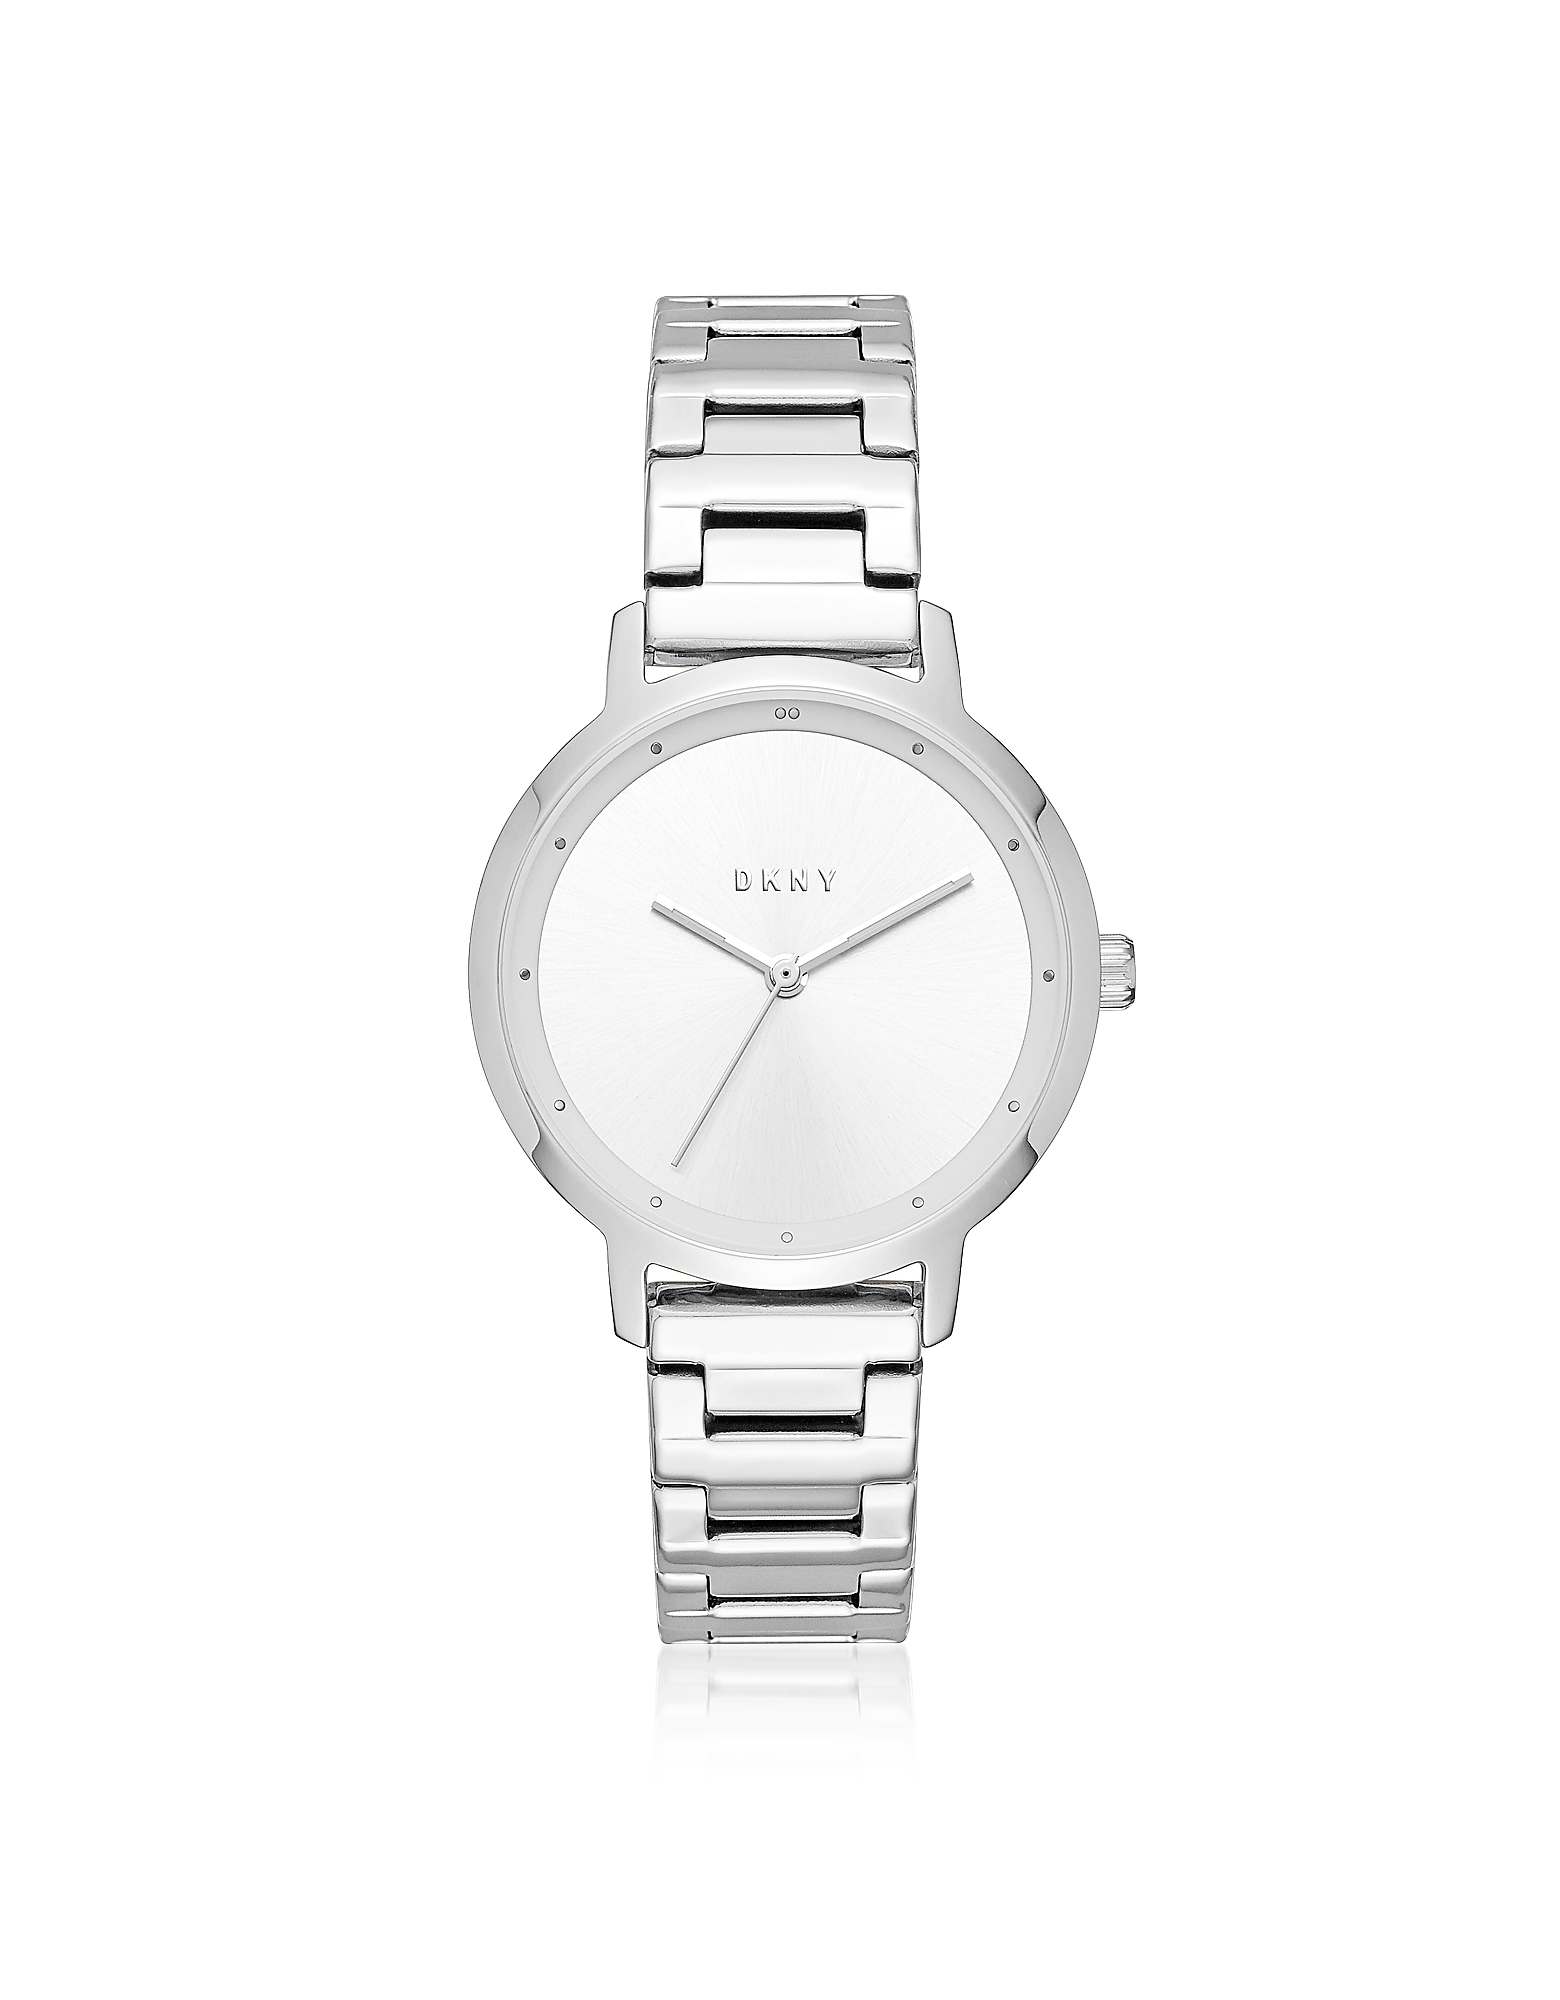 DKNY Women's Watches, The Modernist Silver Tone Women's Watch